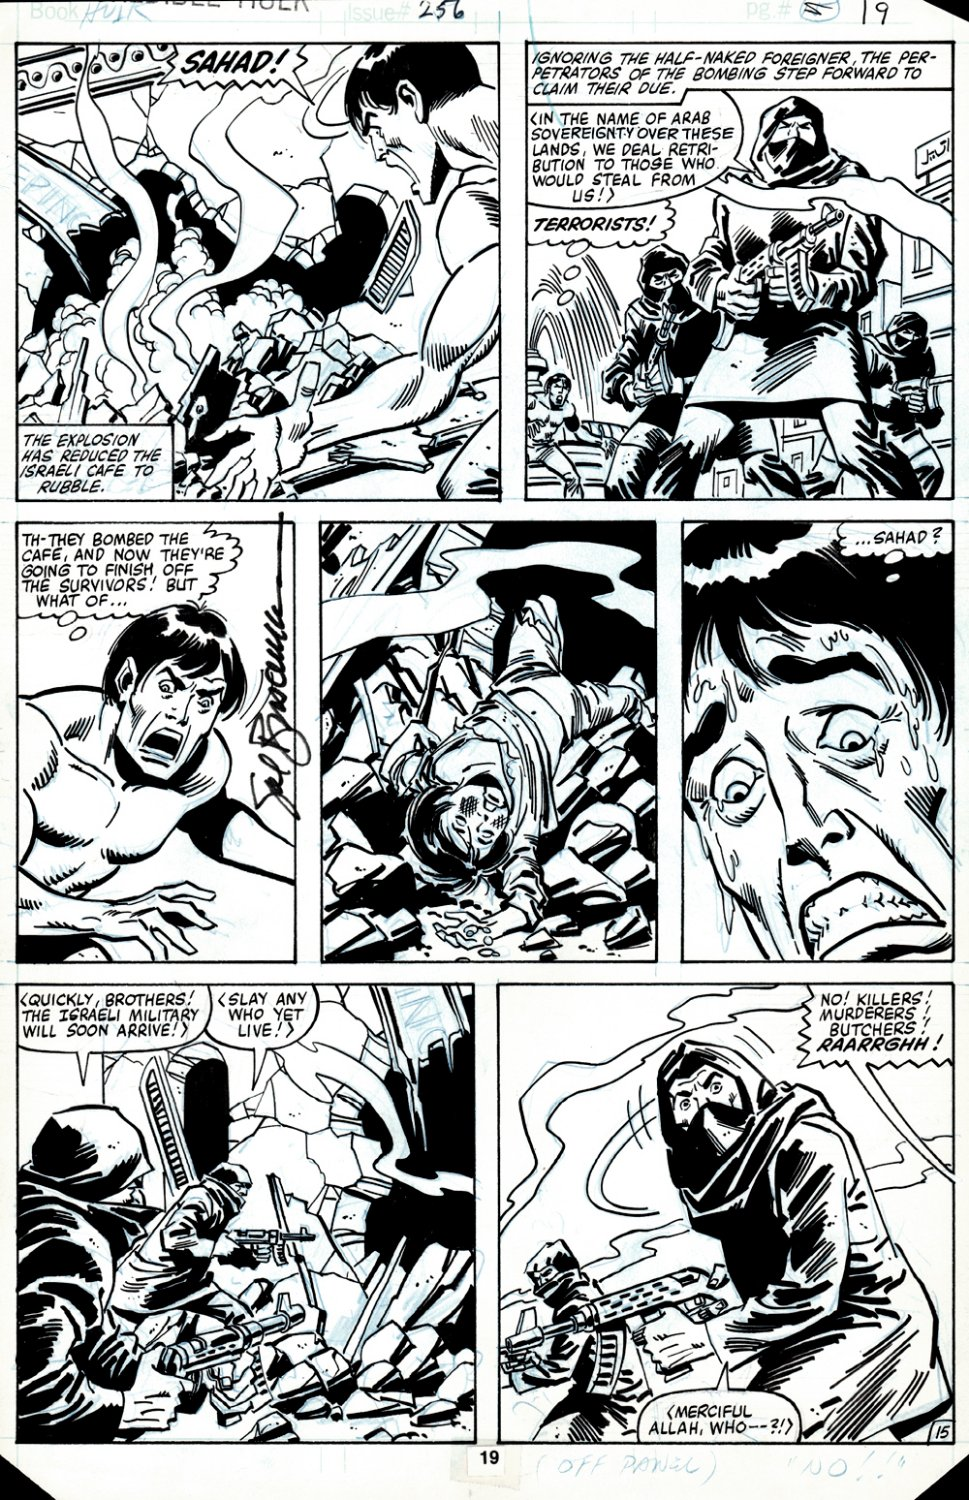 Incredible Hulk #256 p 15 (BRUCE BANNER FINDS THE DEAD ISRAELI YOUNG BOY 'SAHAS' WHO JUST GOT BLOWN UP & TRANSFORMS!) 1980